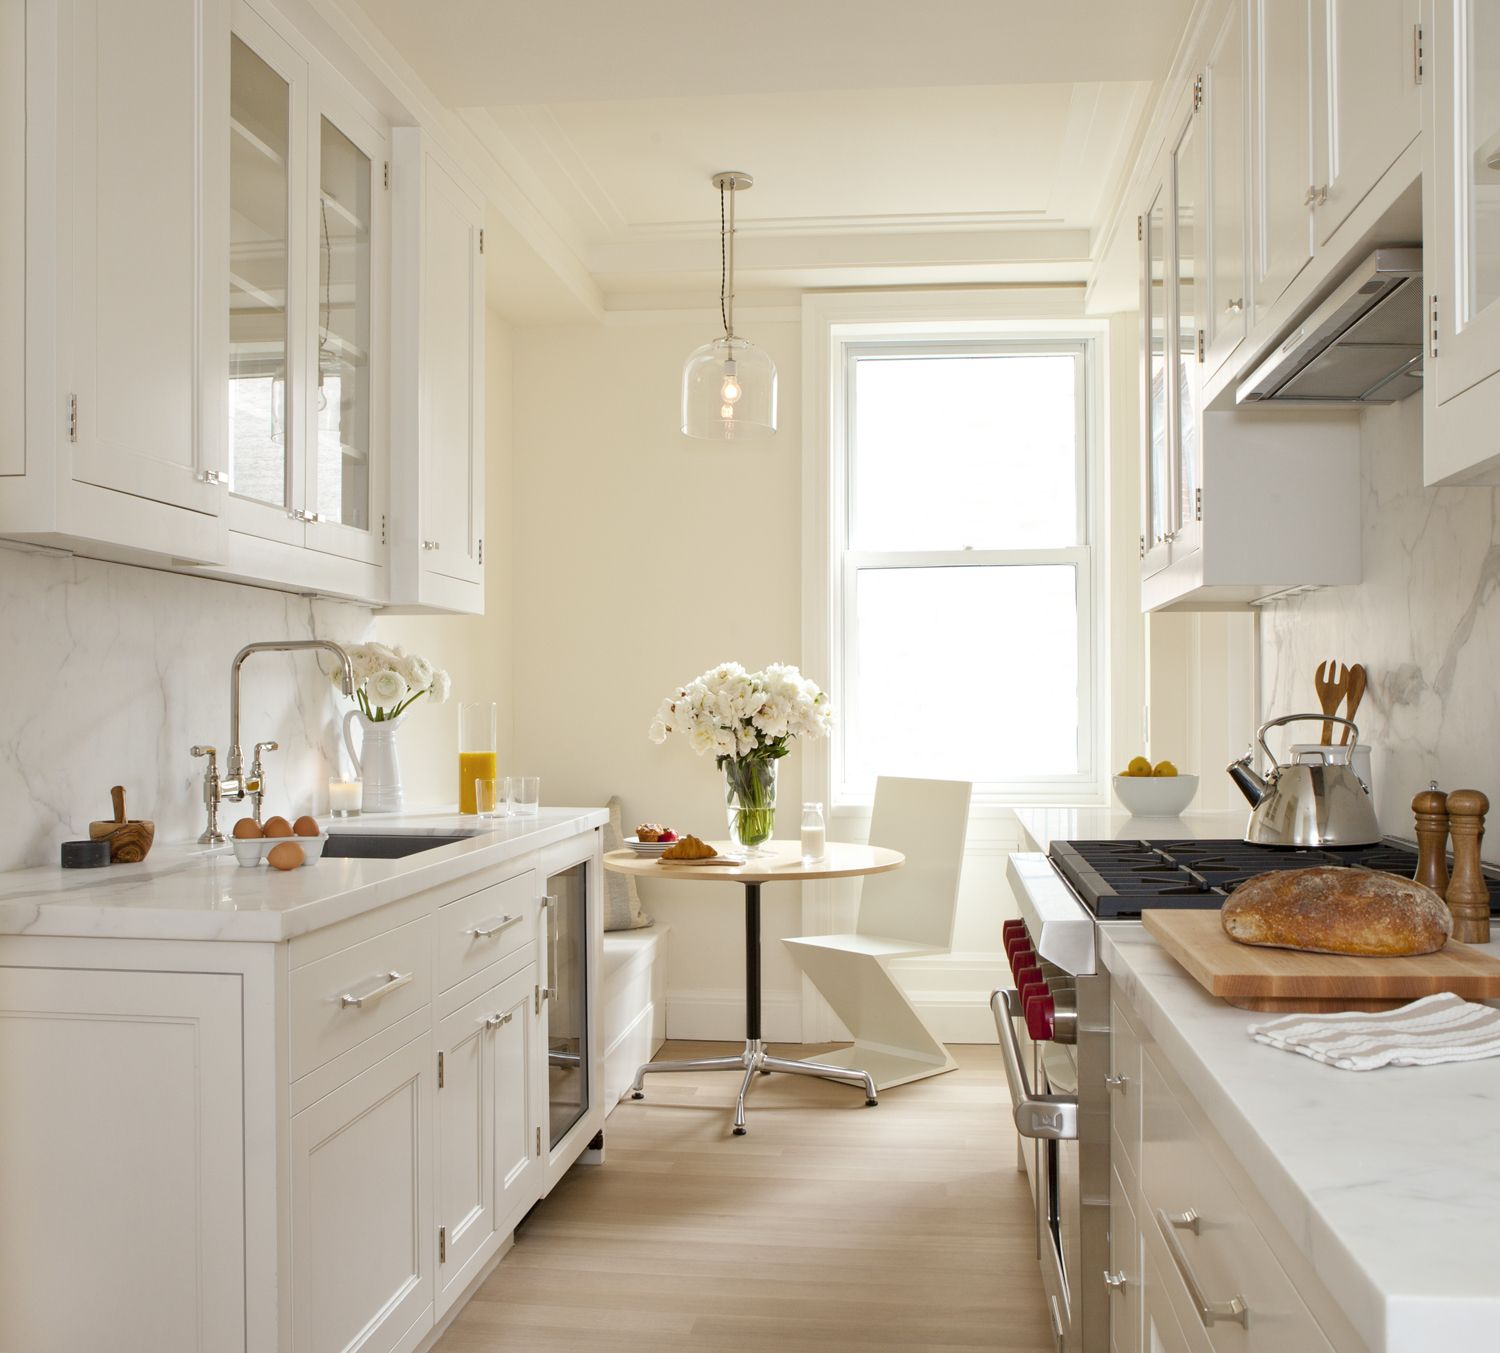 White Galley Kitchen And Banquette Seating By Alyssa